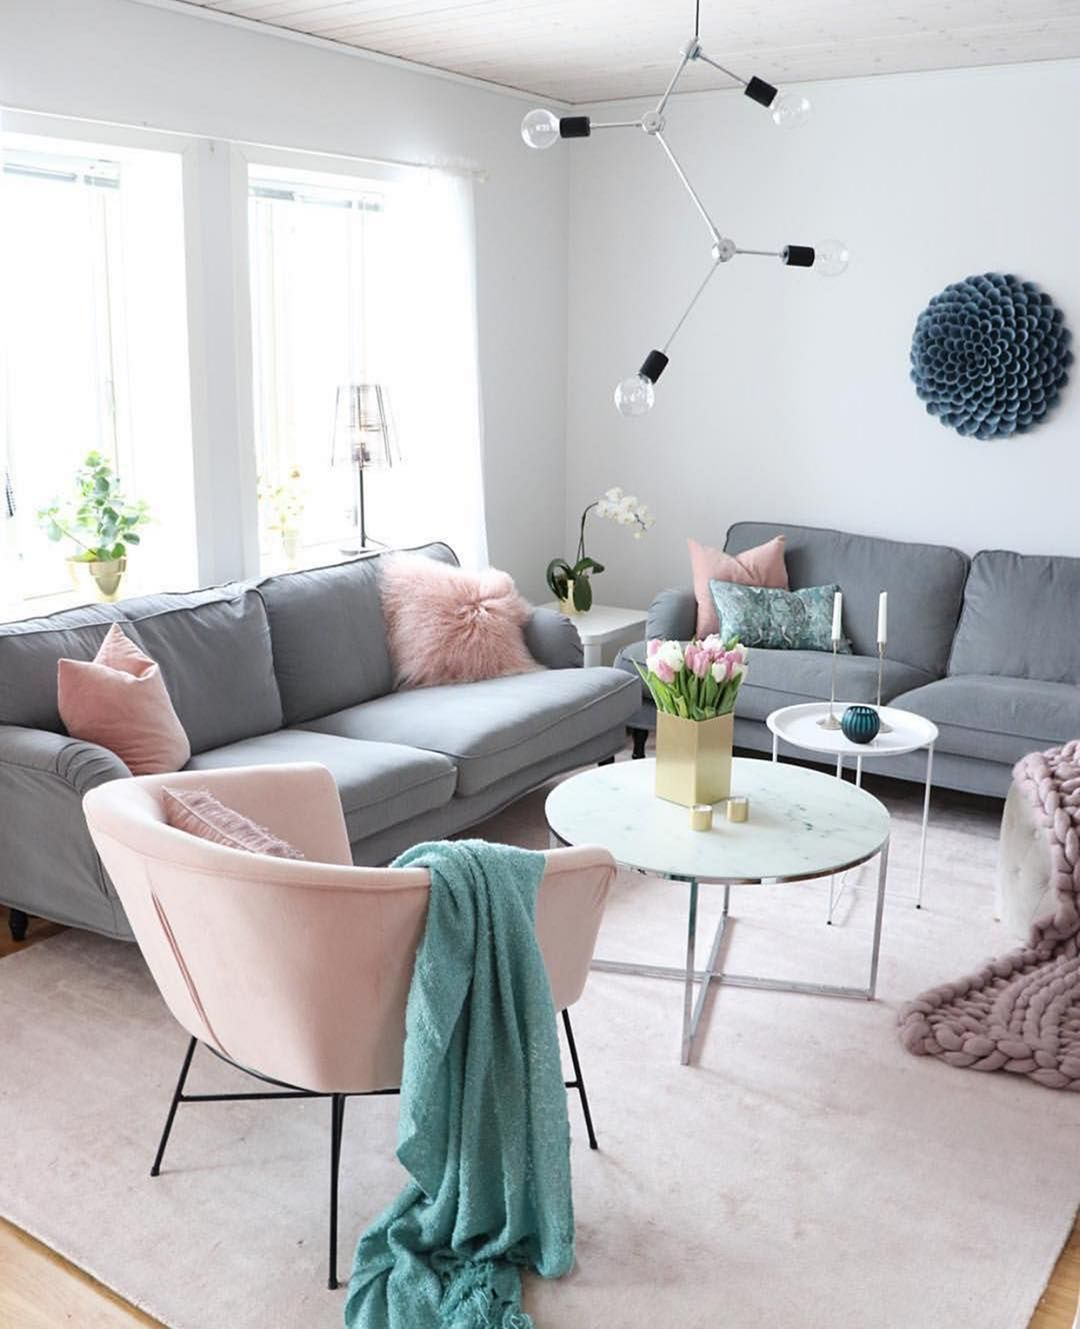 25 Amazing And Most Suitable Sofa And Rug Combination You Need To Try For Your Living Room images